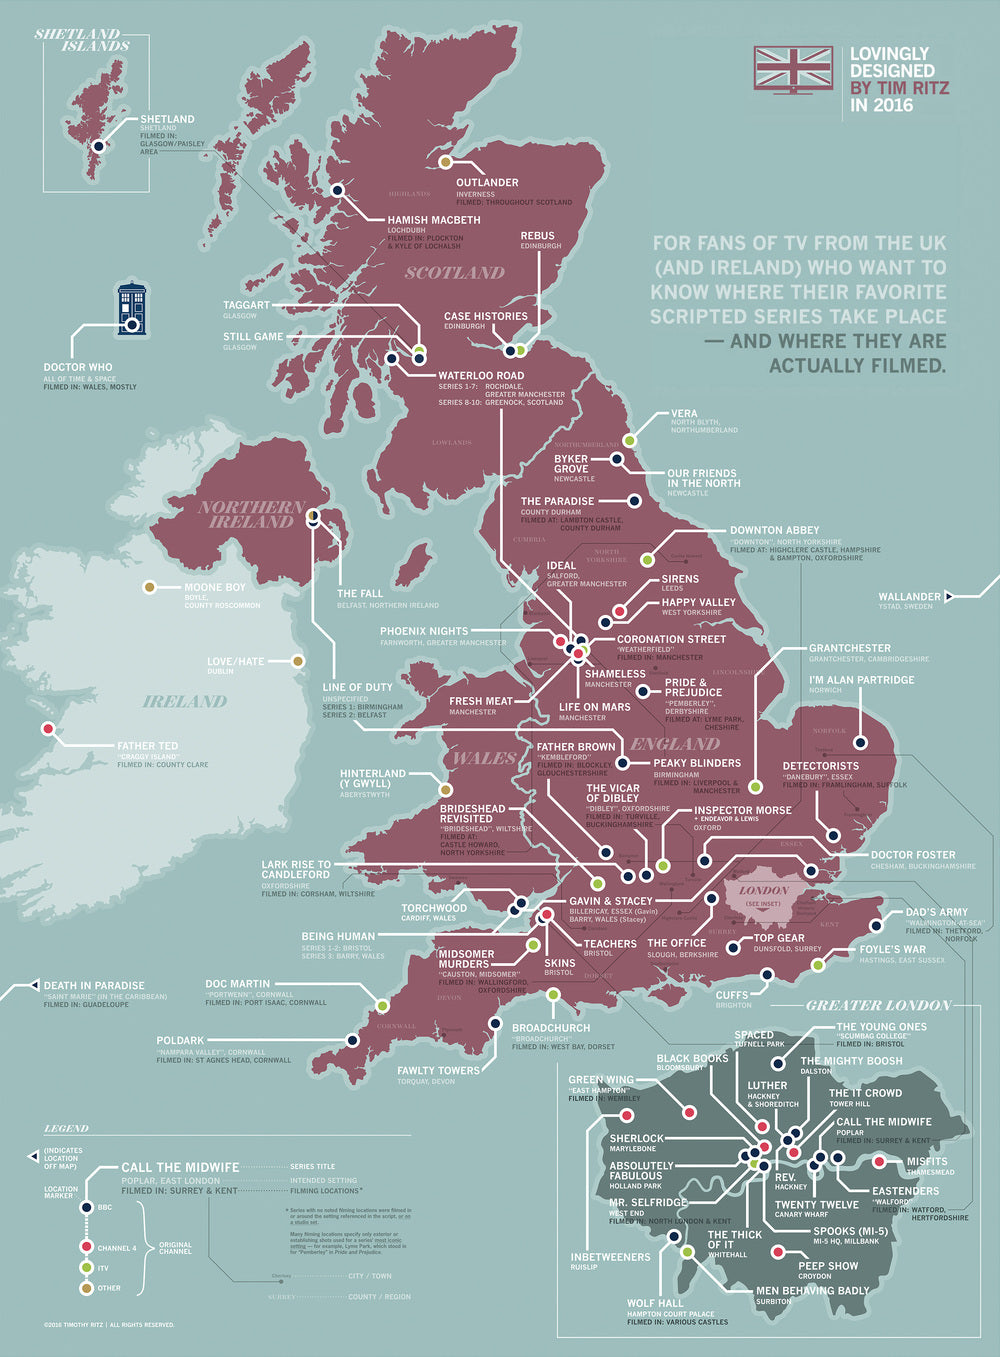 The Great British Television Map - whole of the UK is covered